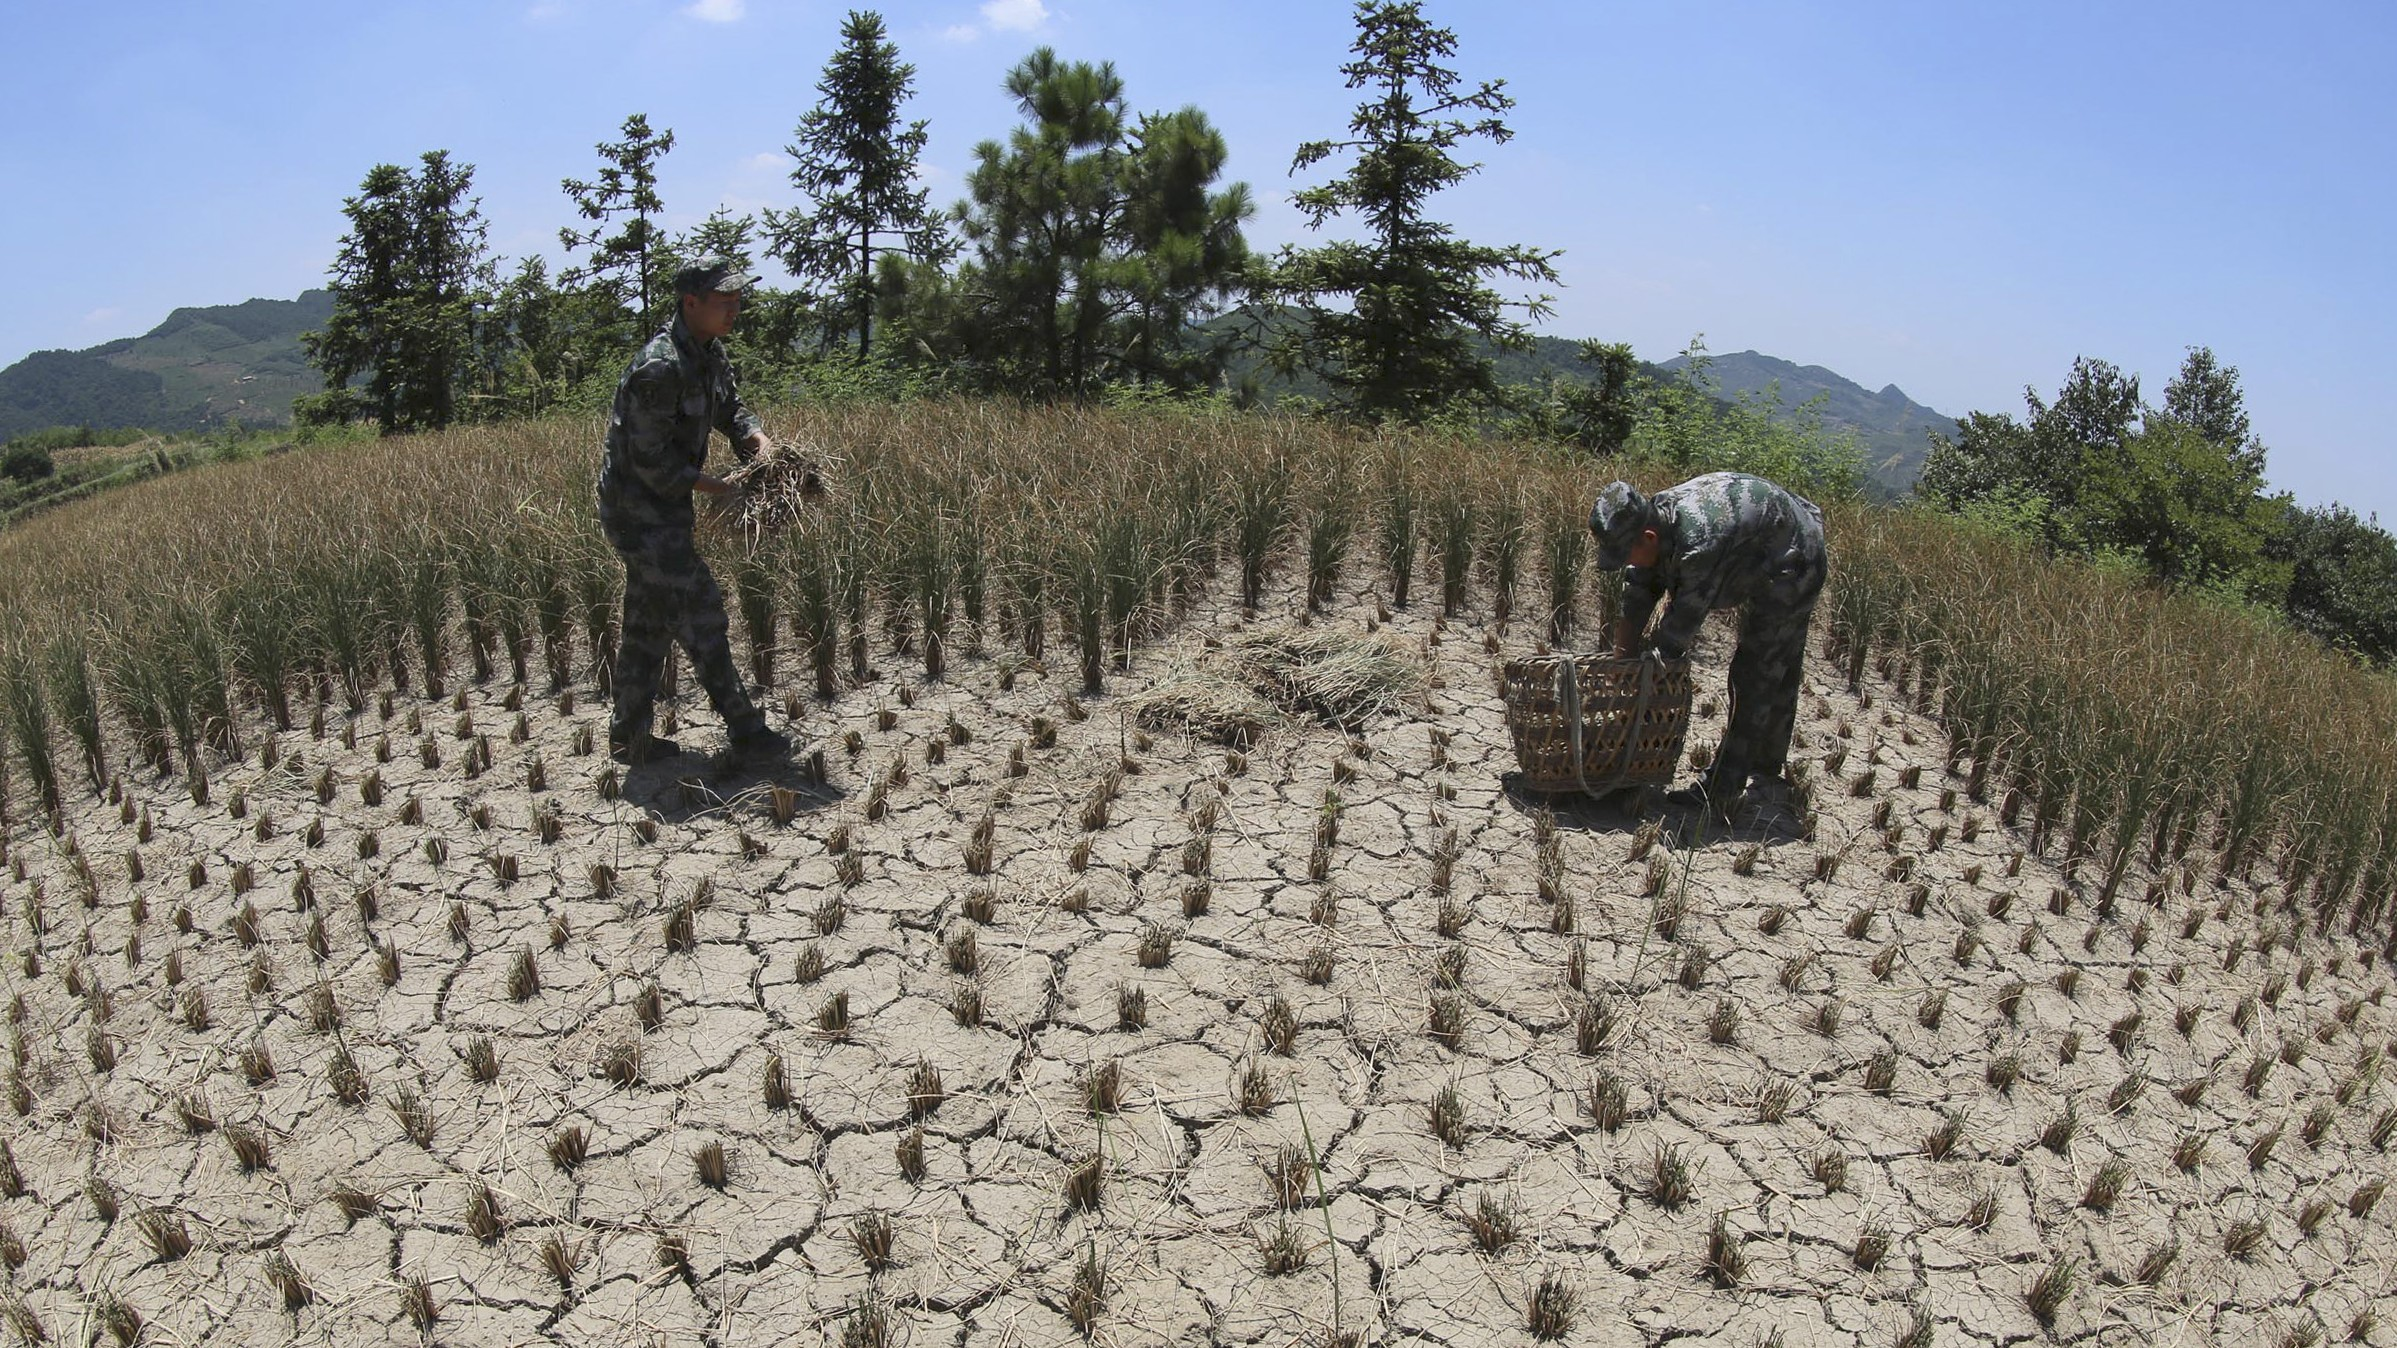 Militia cut off damaged crops under the summer heat after a drought hit Loudi, Hunan province, July 31, 2013. The city has seen 33 days of the summer heat with it's highest temperatures soaring up to 35 degree celsius (95 Fahrenheit). Picture taken July 31, 2013. REUTERS/Stringer (CHINA - Tags: ENVIRONMENT AGRICULTURE) CHINA OUT. NO COMMERCIAL OR EDITORIAL SALES IN CHINA - RTX126JZ